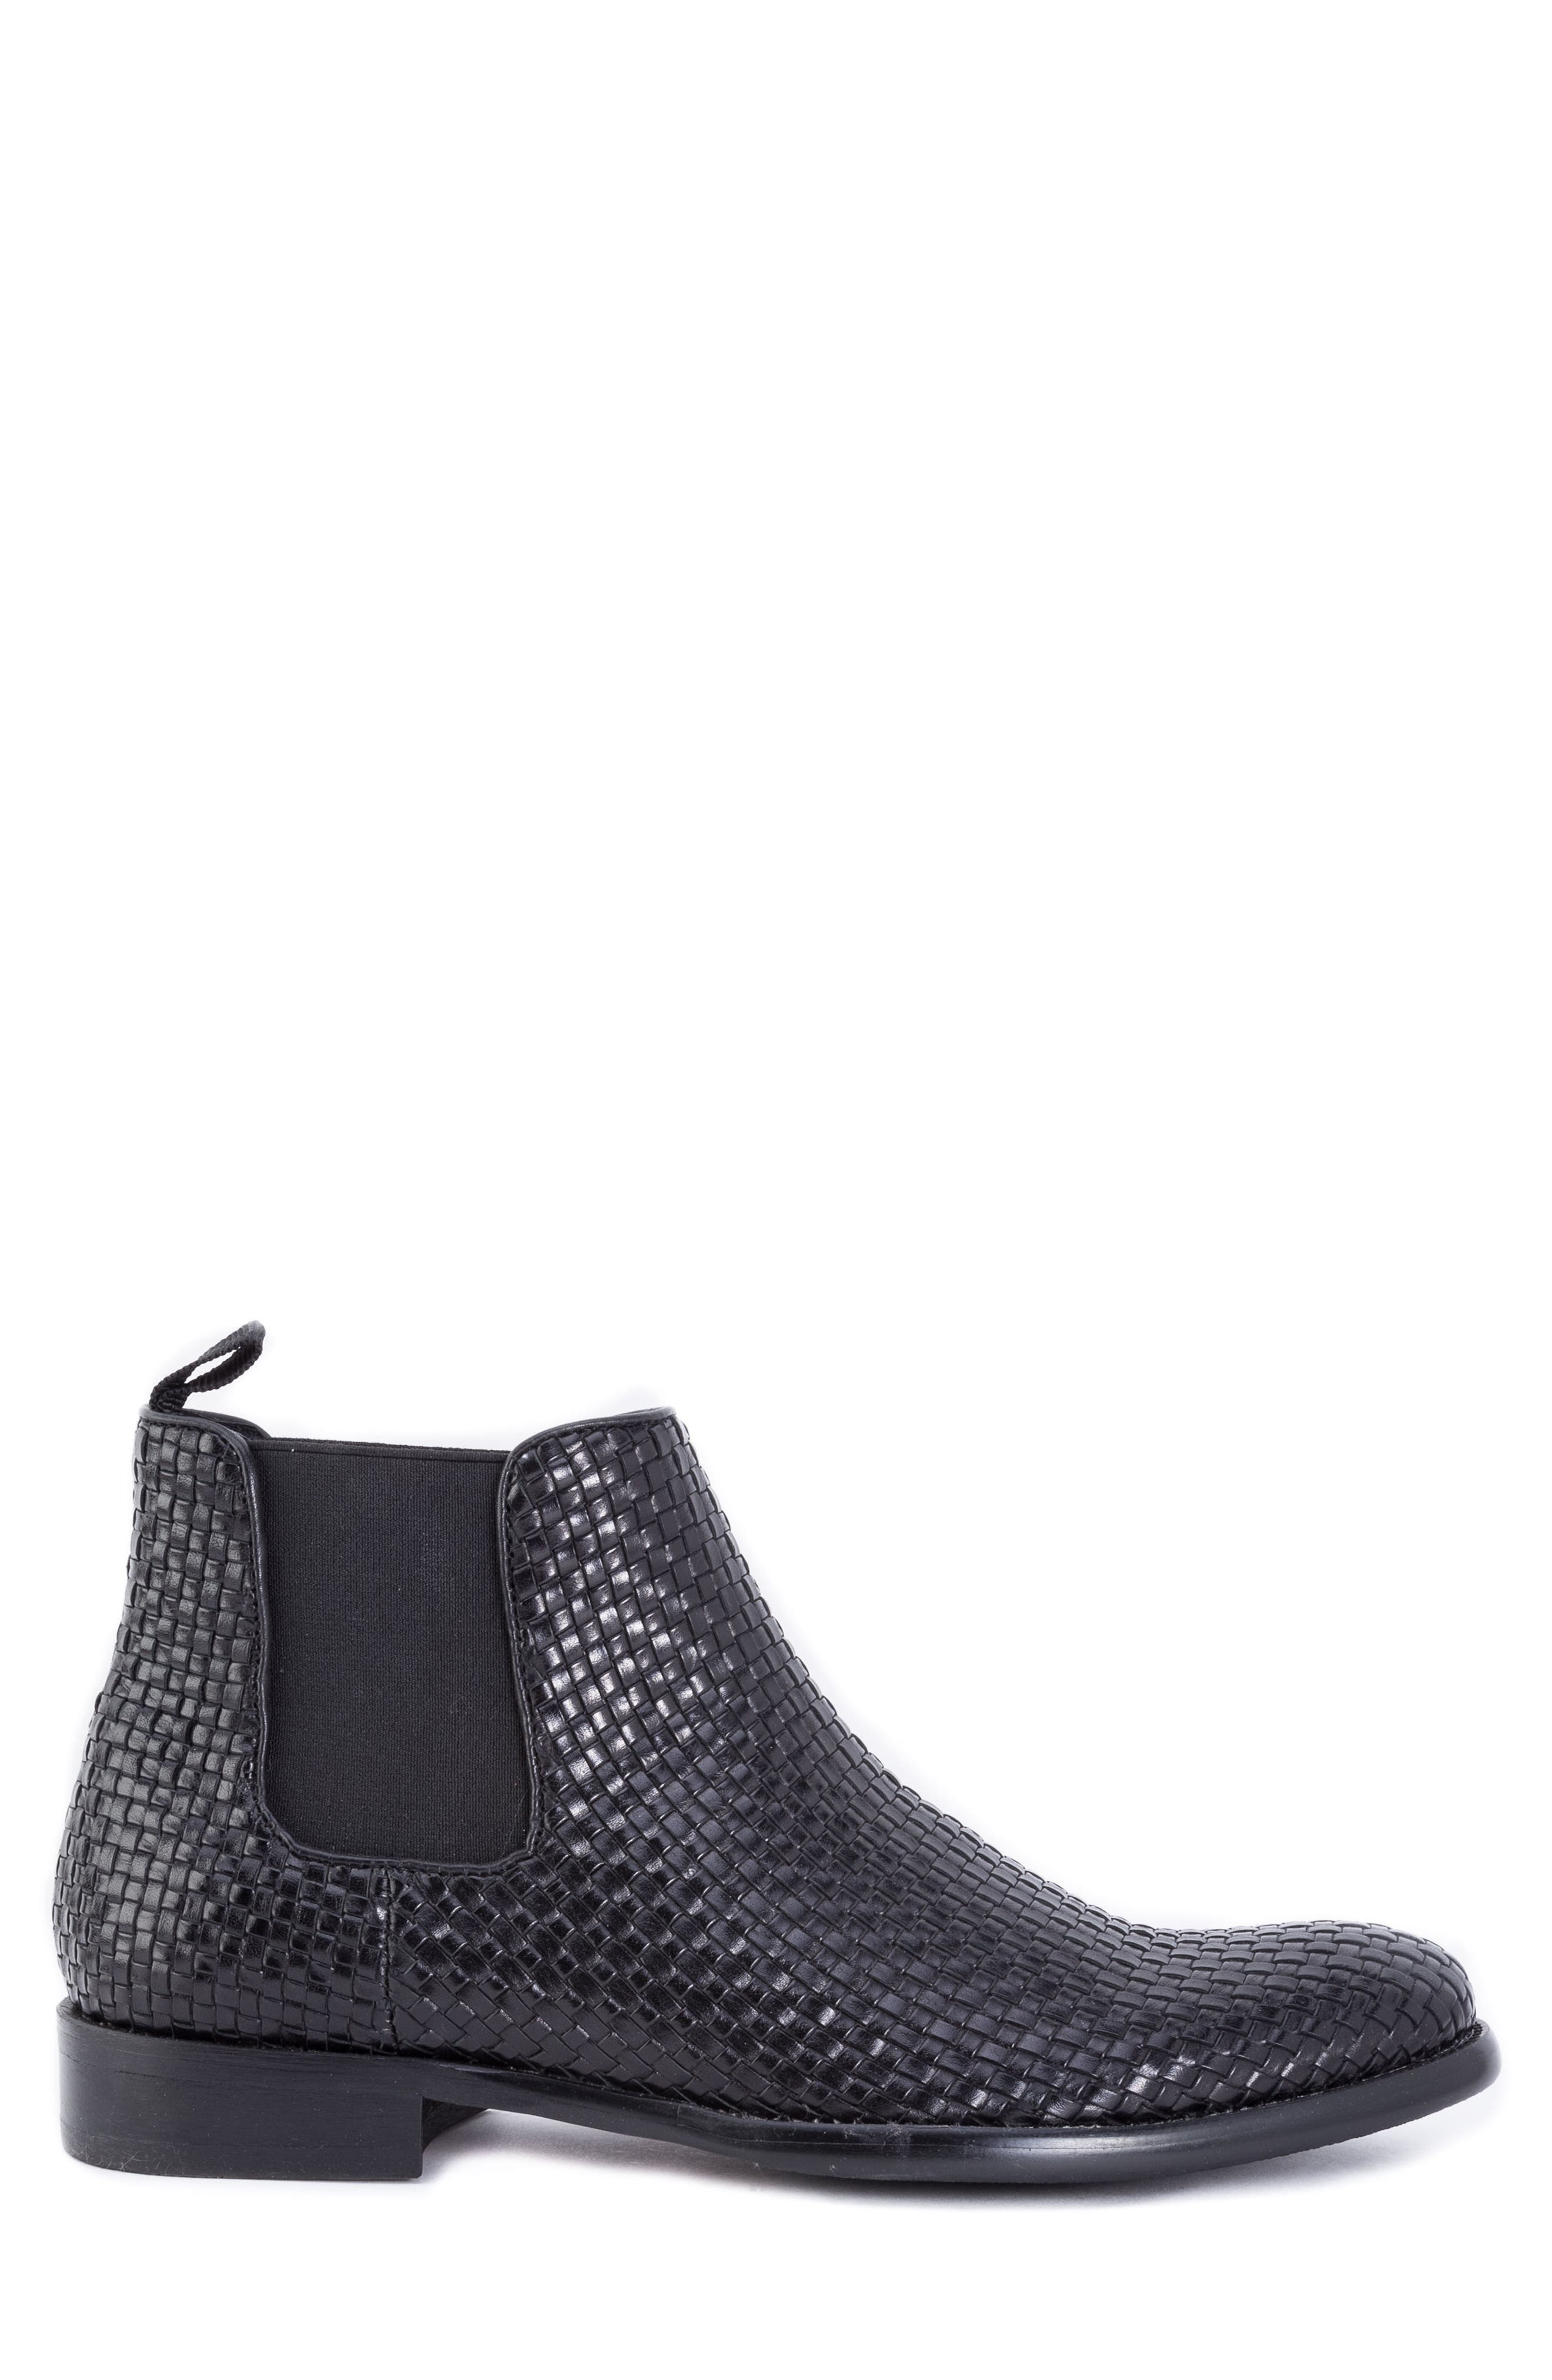 Woodward Woven Chelsea Boot,                             Alternate thumbnail 3, color,                             BLACK LEATHER